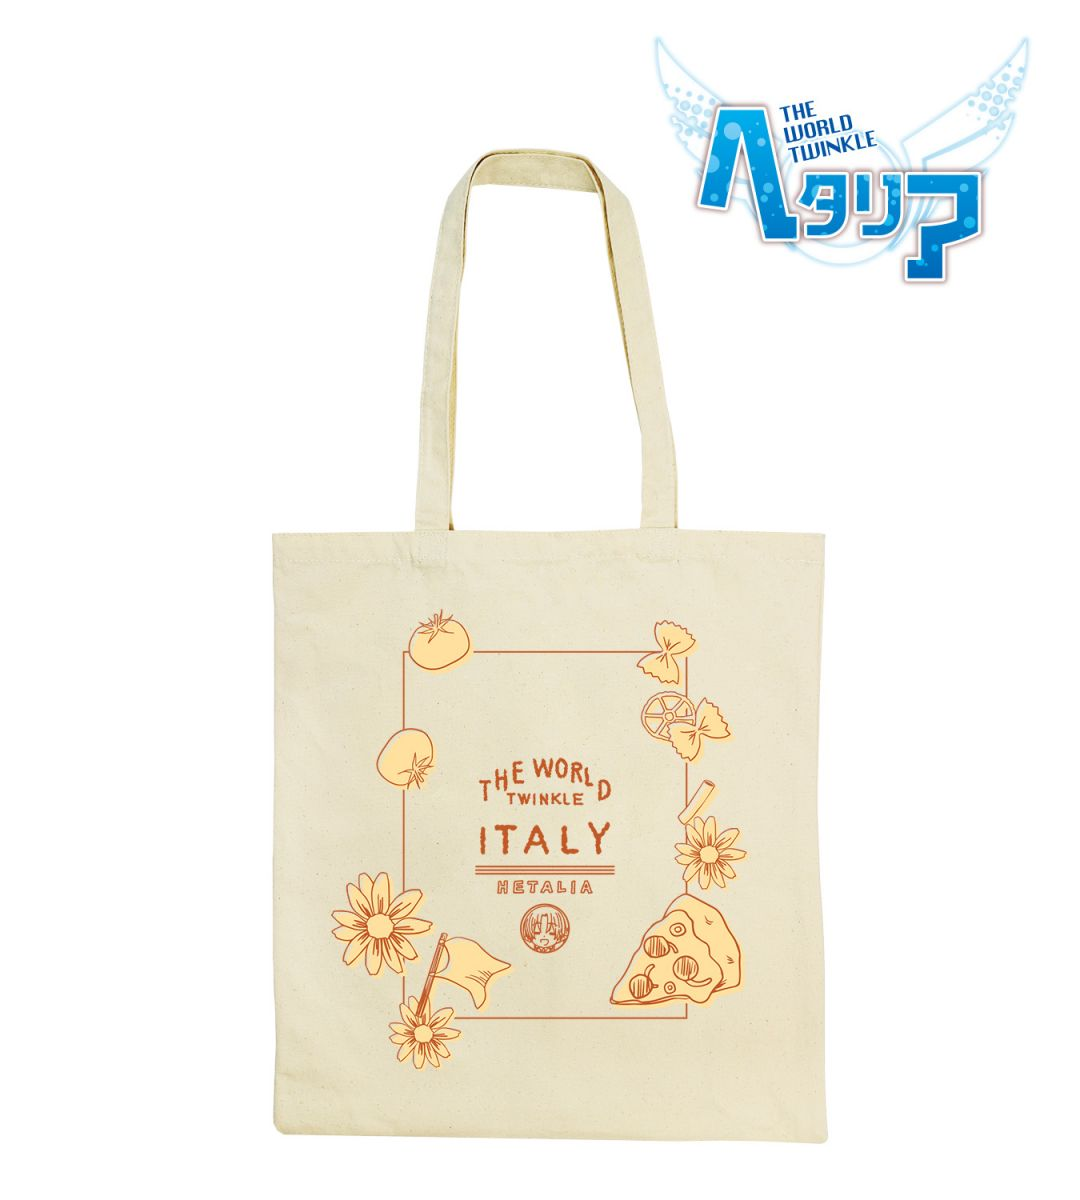 Tote Bag | Anime Hetalia - The World Twinkle | Anime Merchandise Monday (13-19 August) | MANGA.TOKYO ©2015 日丸屋秀和・幻冬舎コミックス/ヘタリア製作委員会